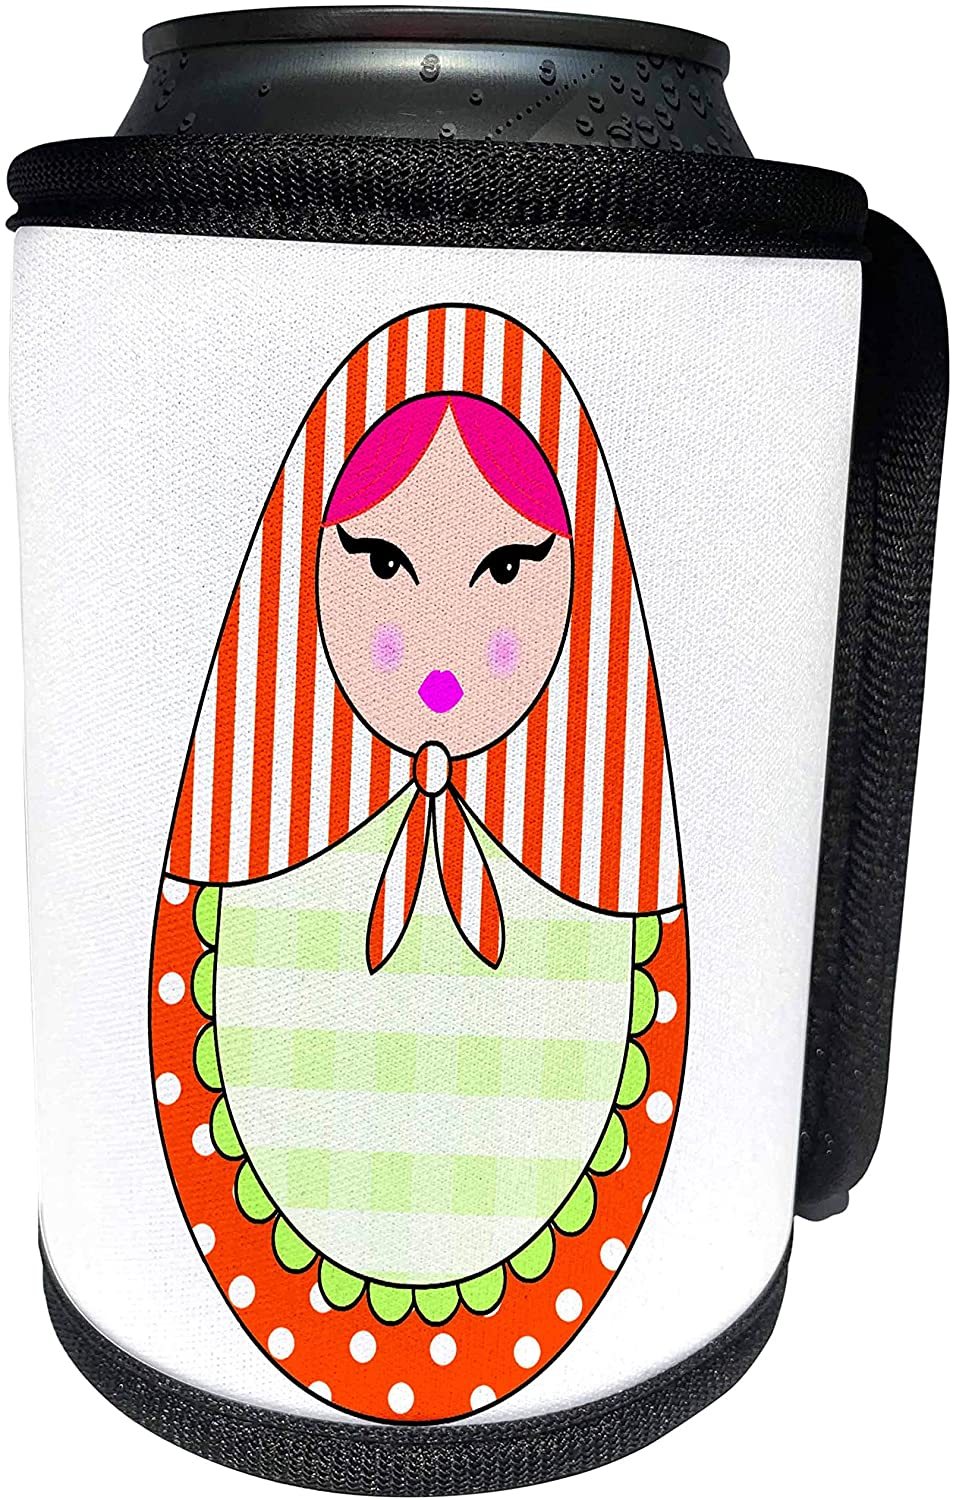 3dRose Janna Salak Designs Dolls - Cute Russian Matryoshka Nesting Doll Pink Hair - Warm Colors White - Can Cooler Bottle Wrap (cc_58637_1)